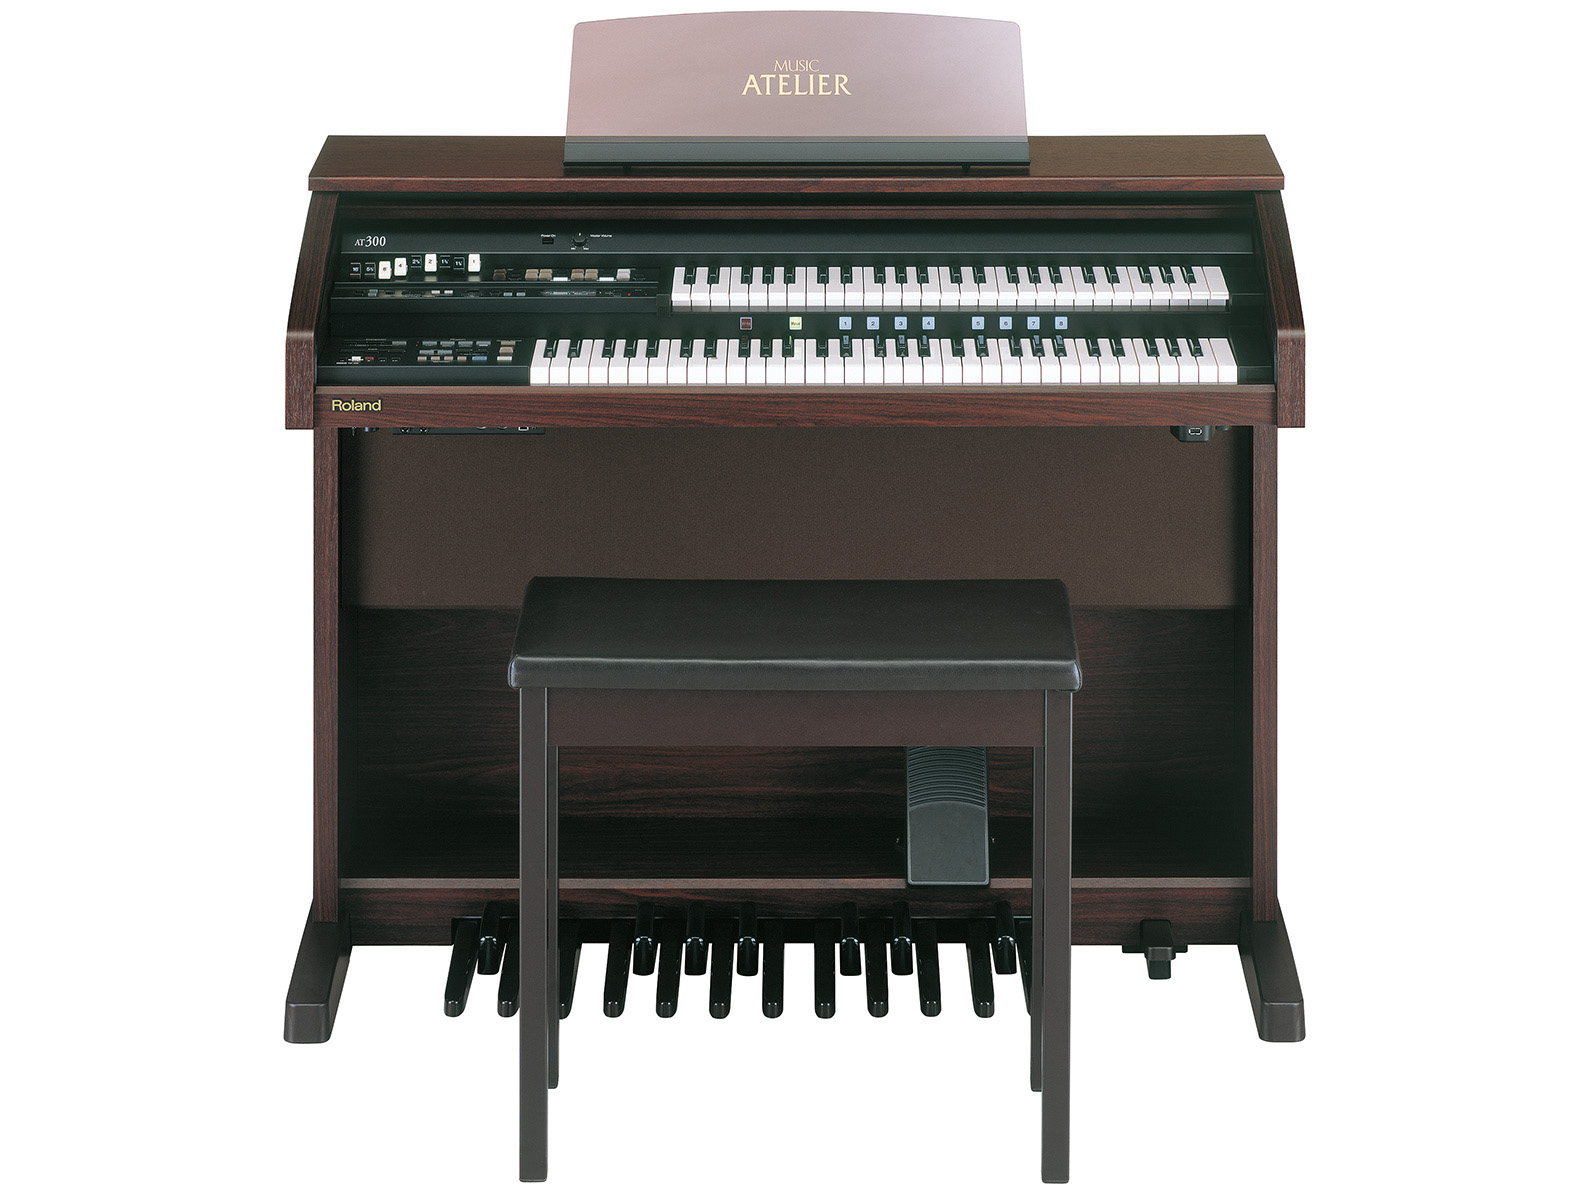 Roland AT-300